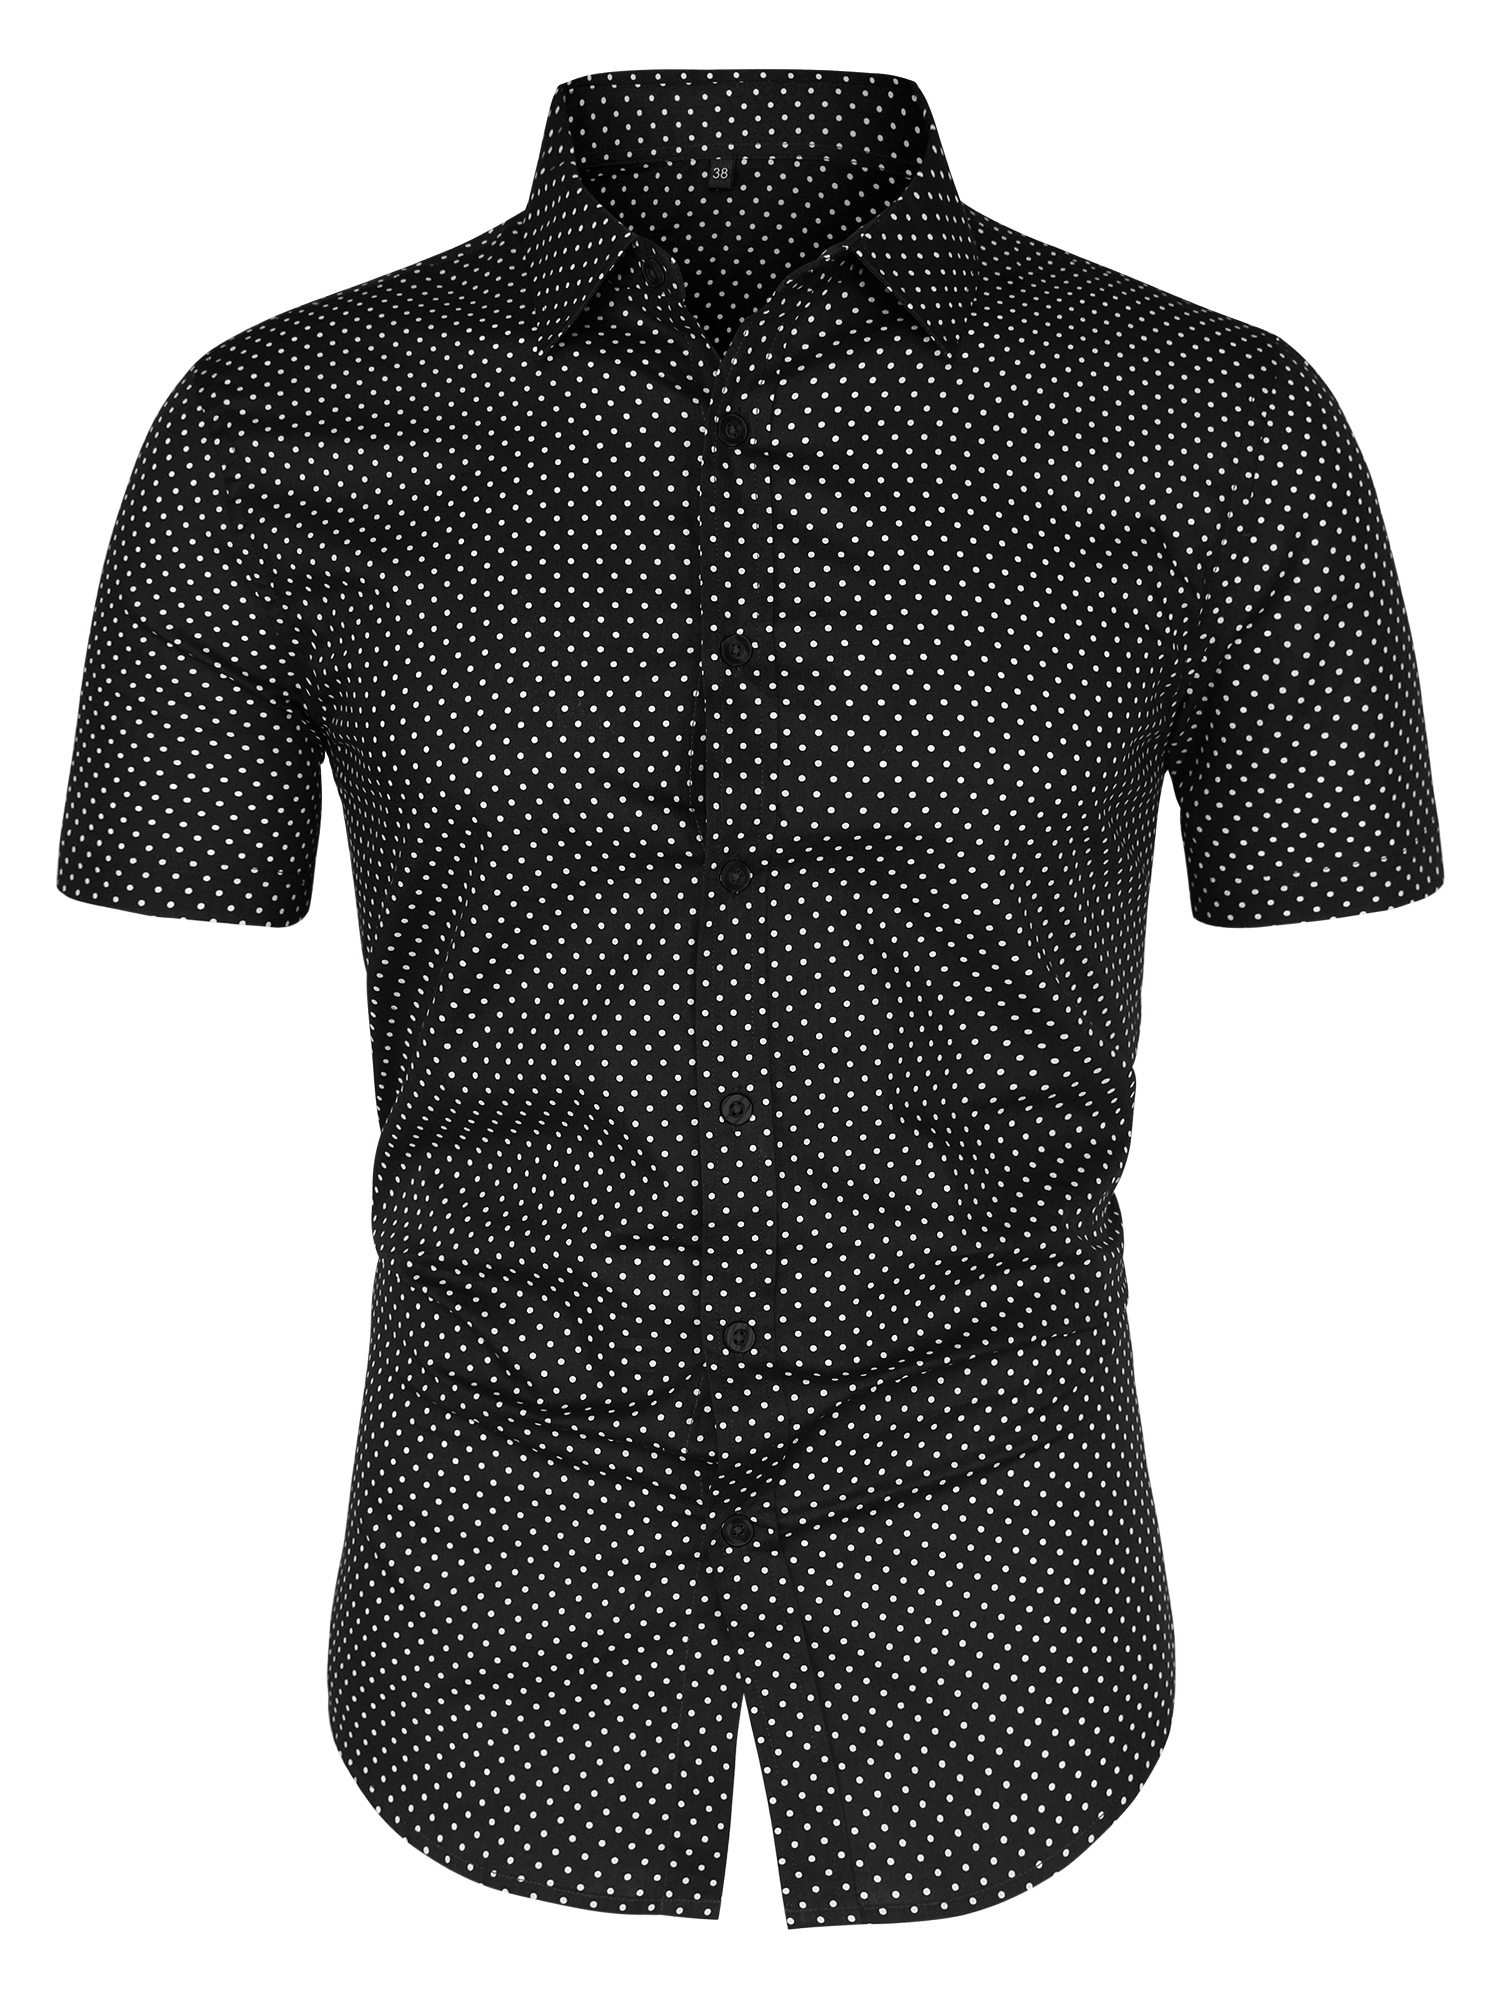 Men Short Sleeves Button Up Cotton Polka Dots Shirt Black S